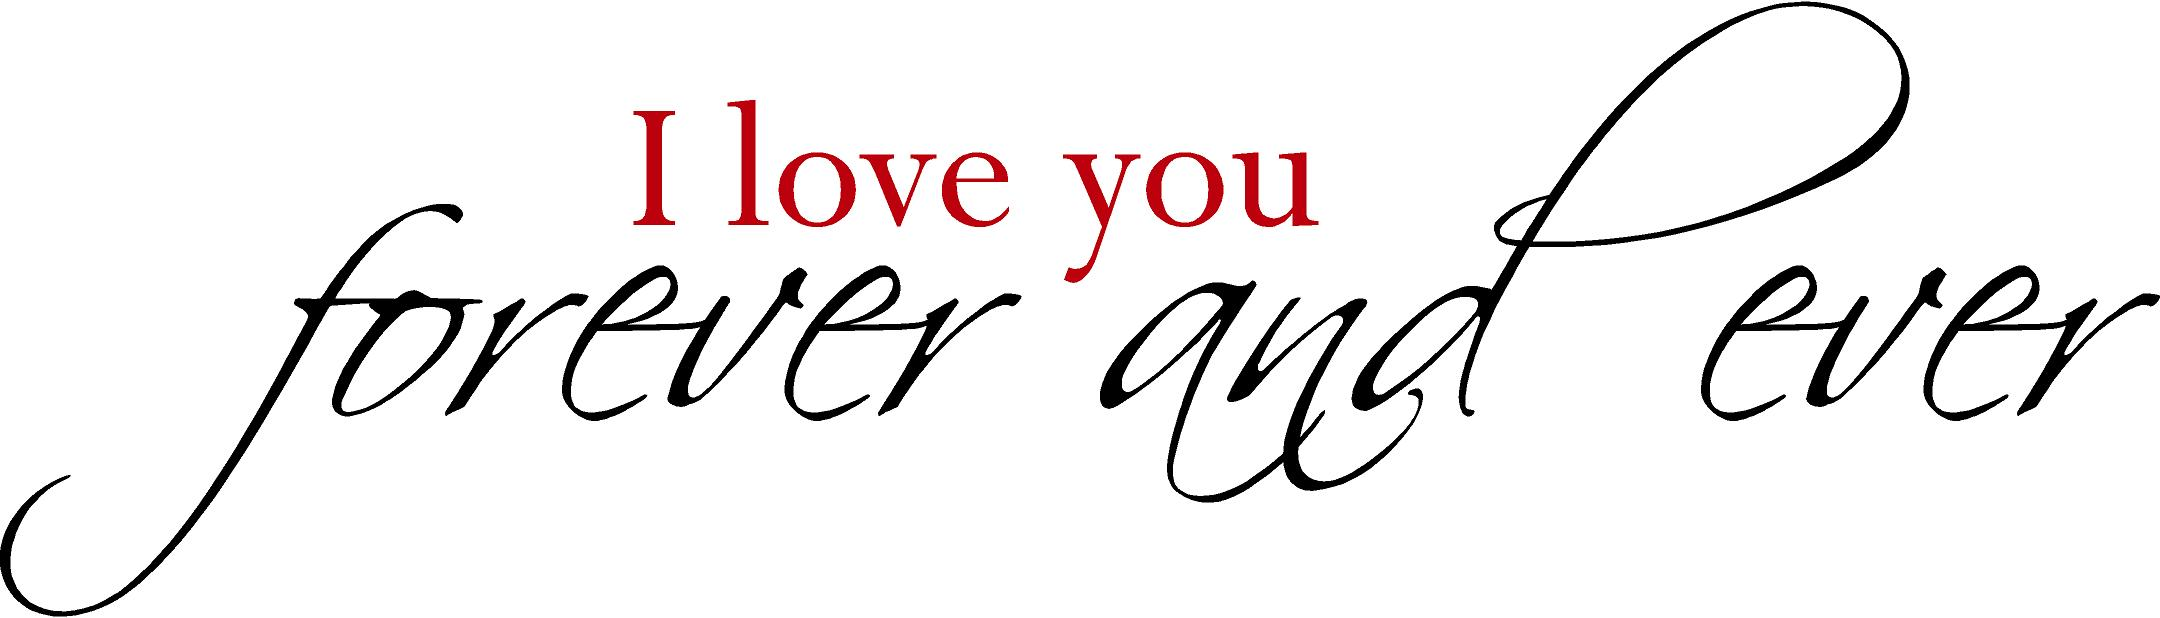 Love You Forever And Ever Header Image